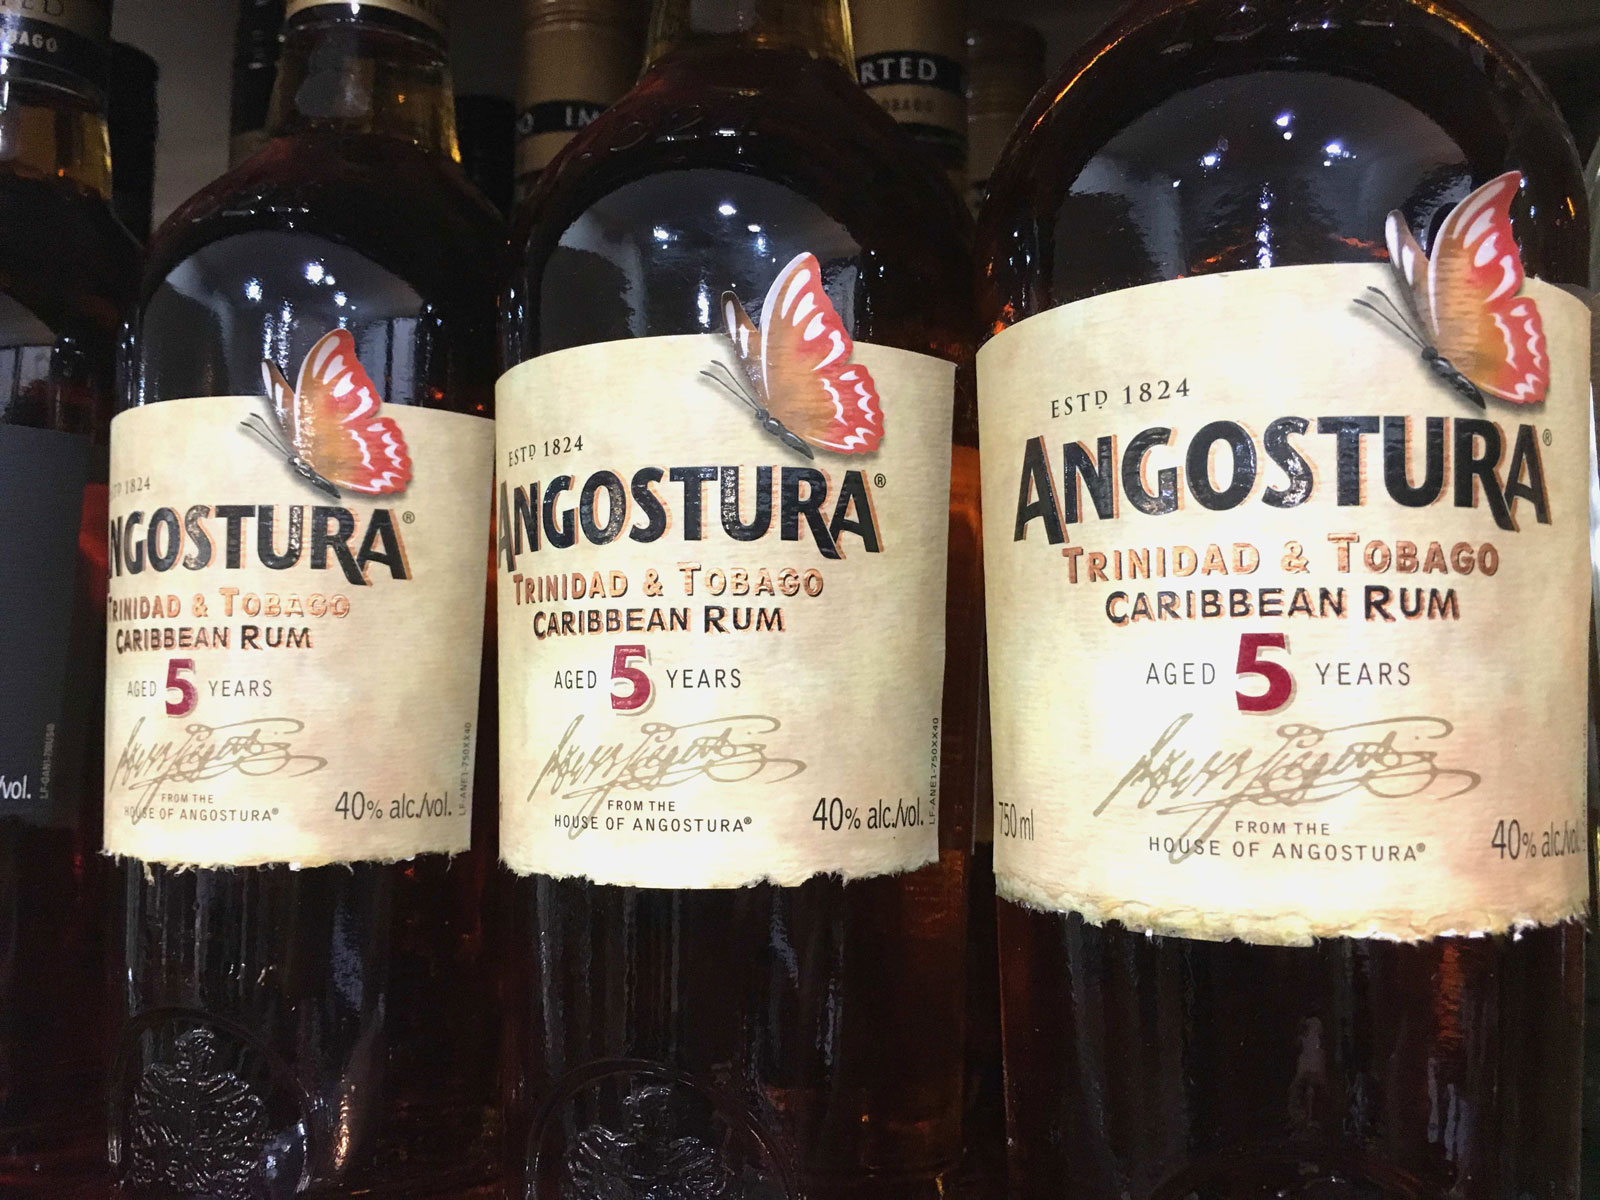 Uncover one of rum's best kept secrets